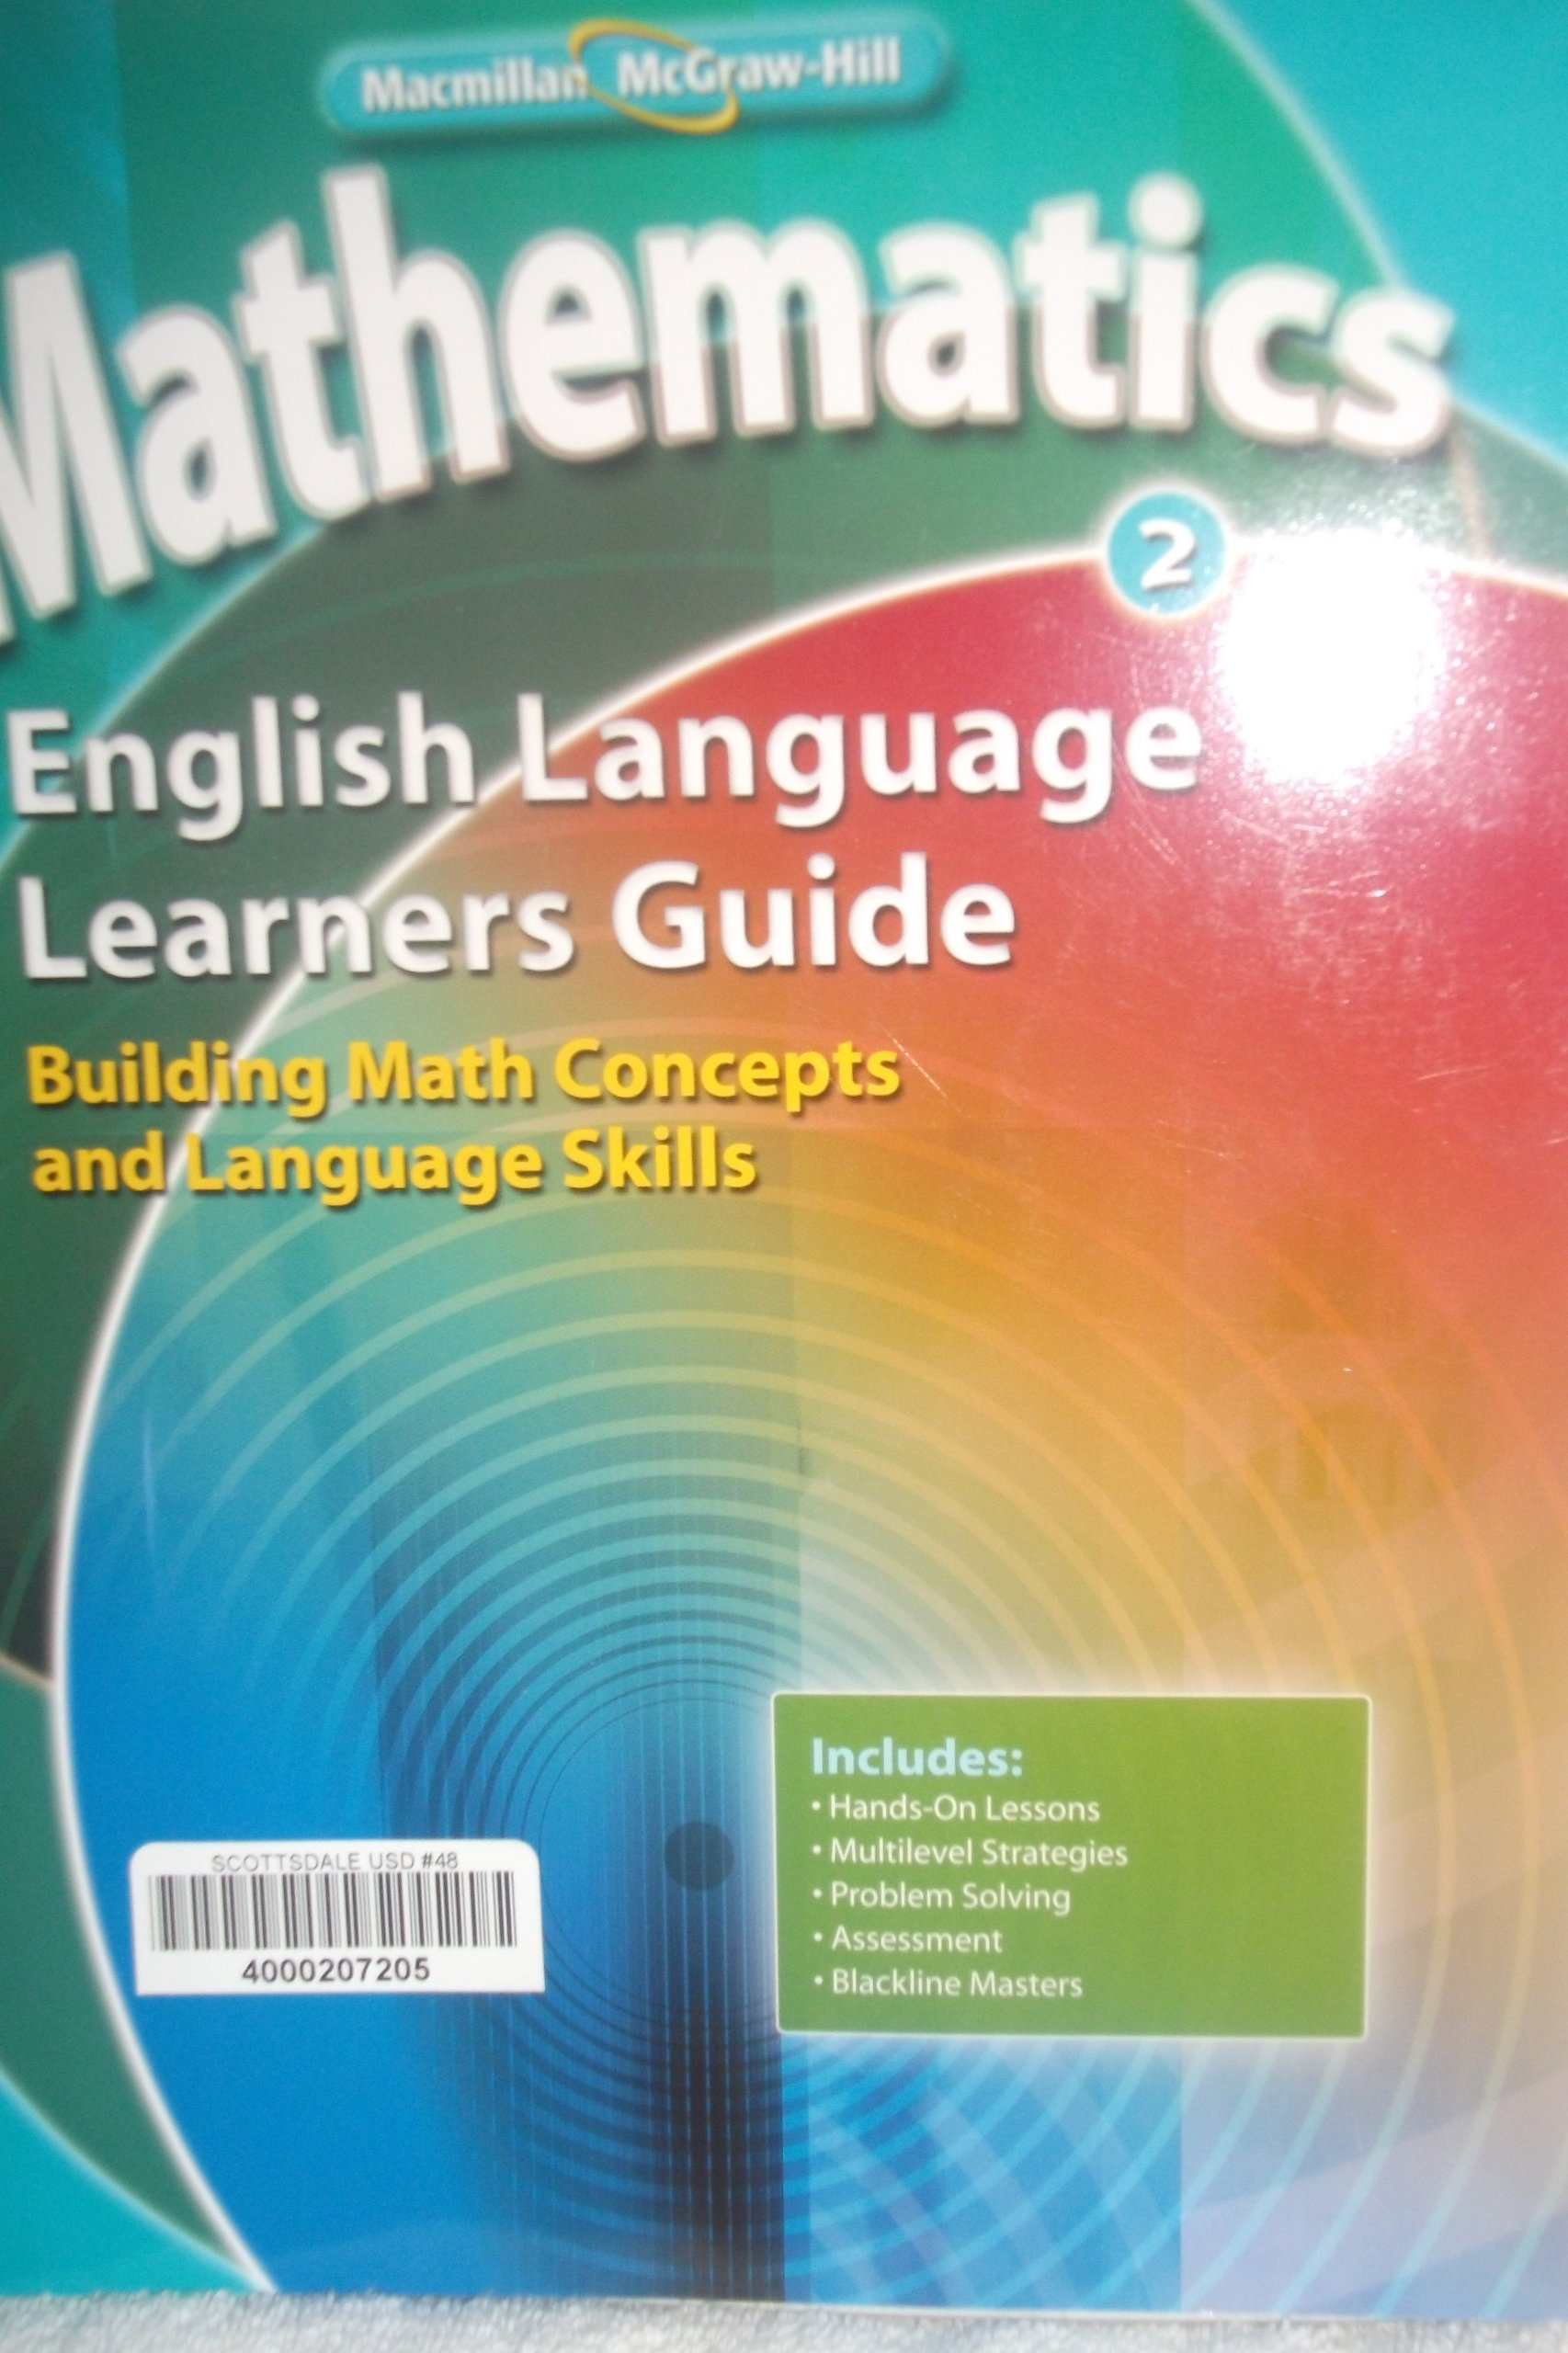 Read Online Mathematics 2 English Language Learners Guide Building Math Concepts and Language Skills (Math Connects) ebook